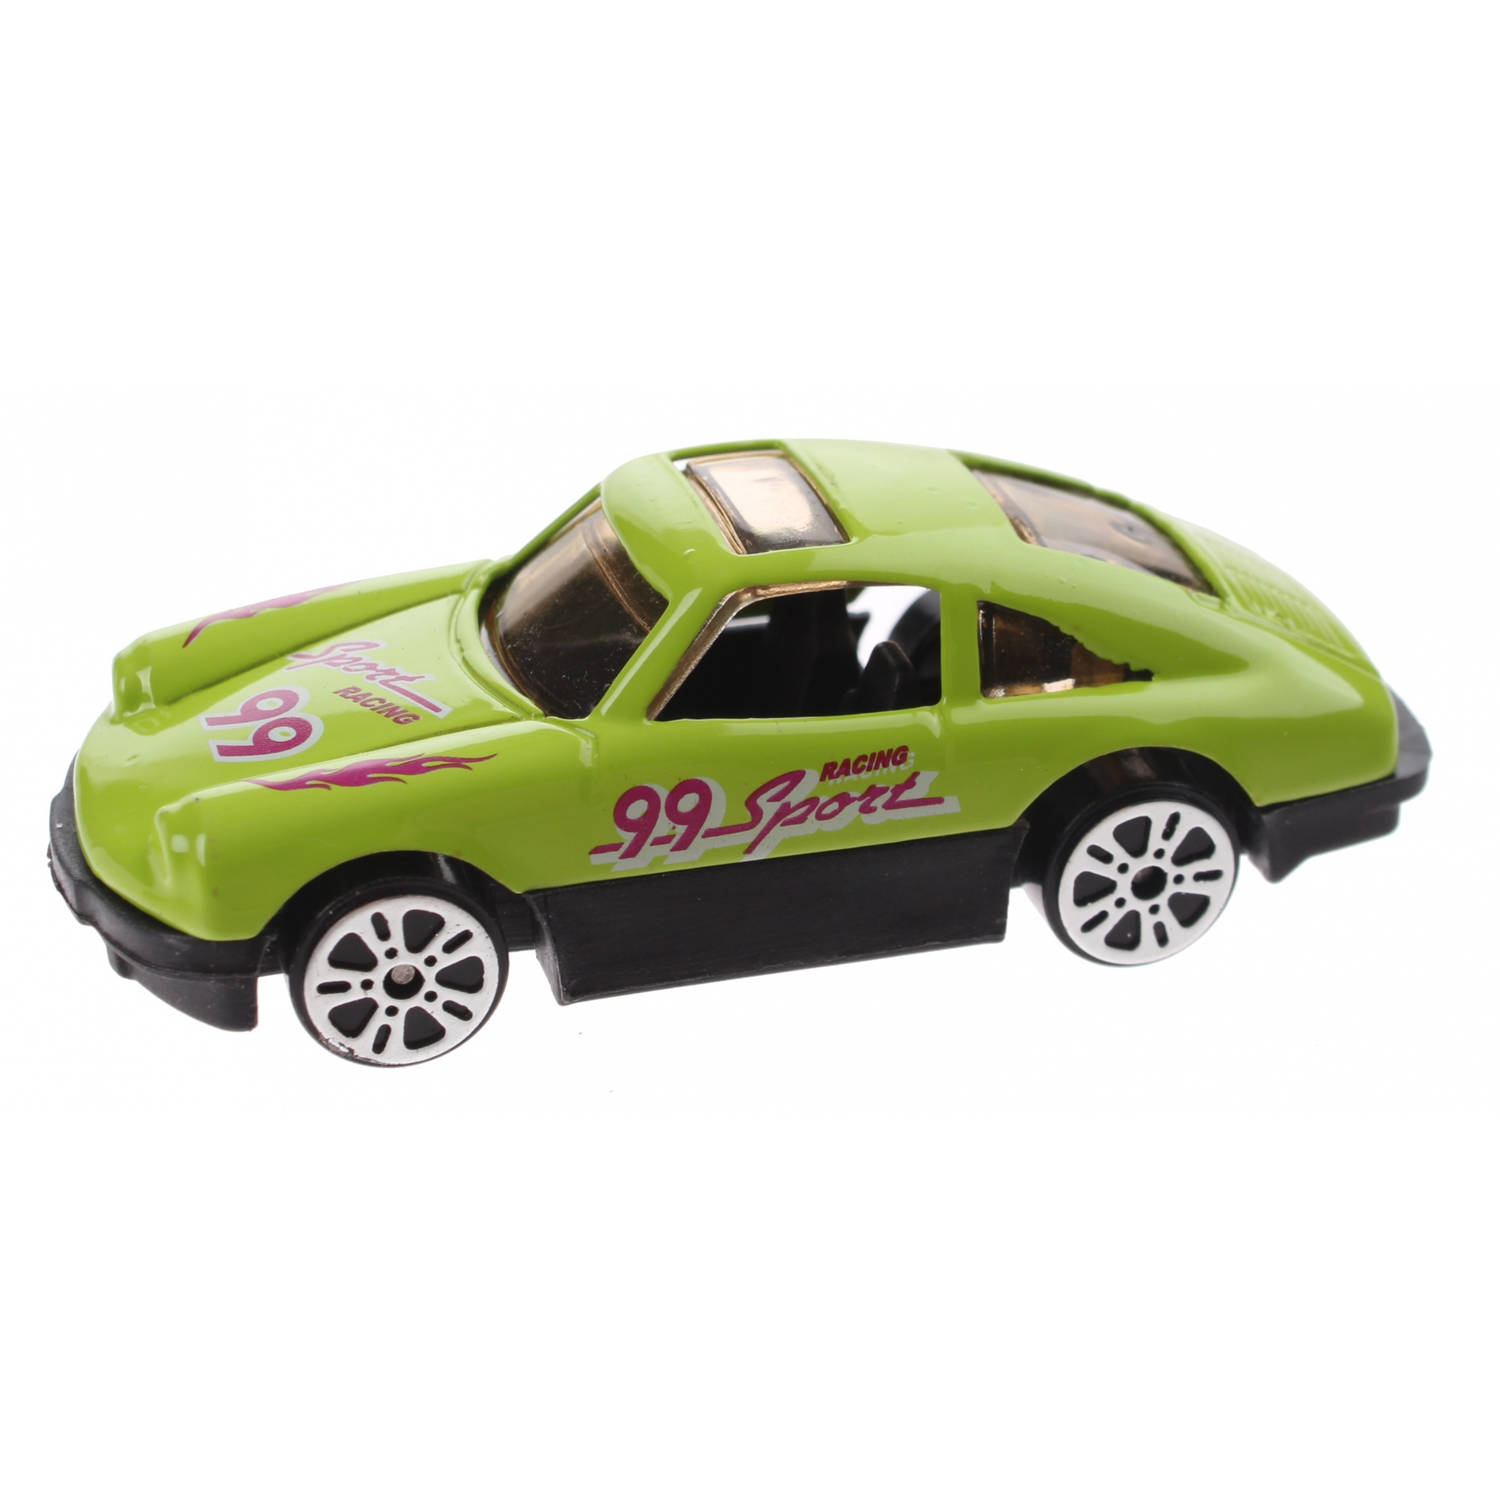 Johntoy schaalmodel super cars die-cast 7 cm lime